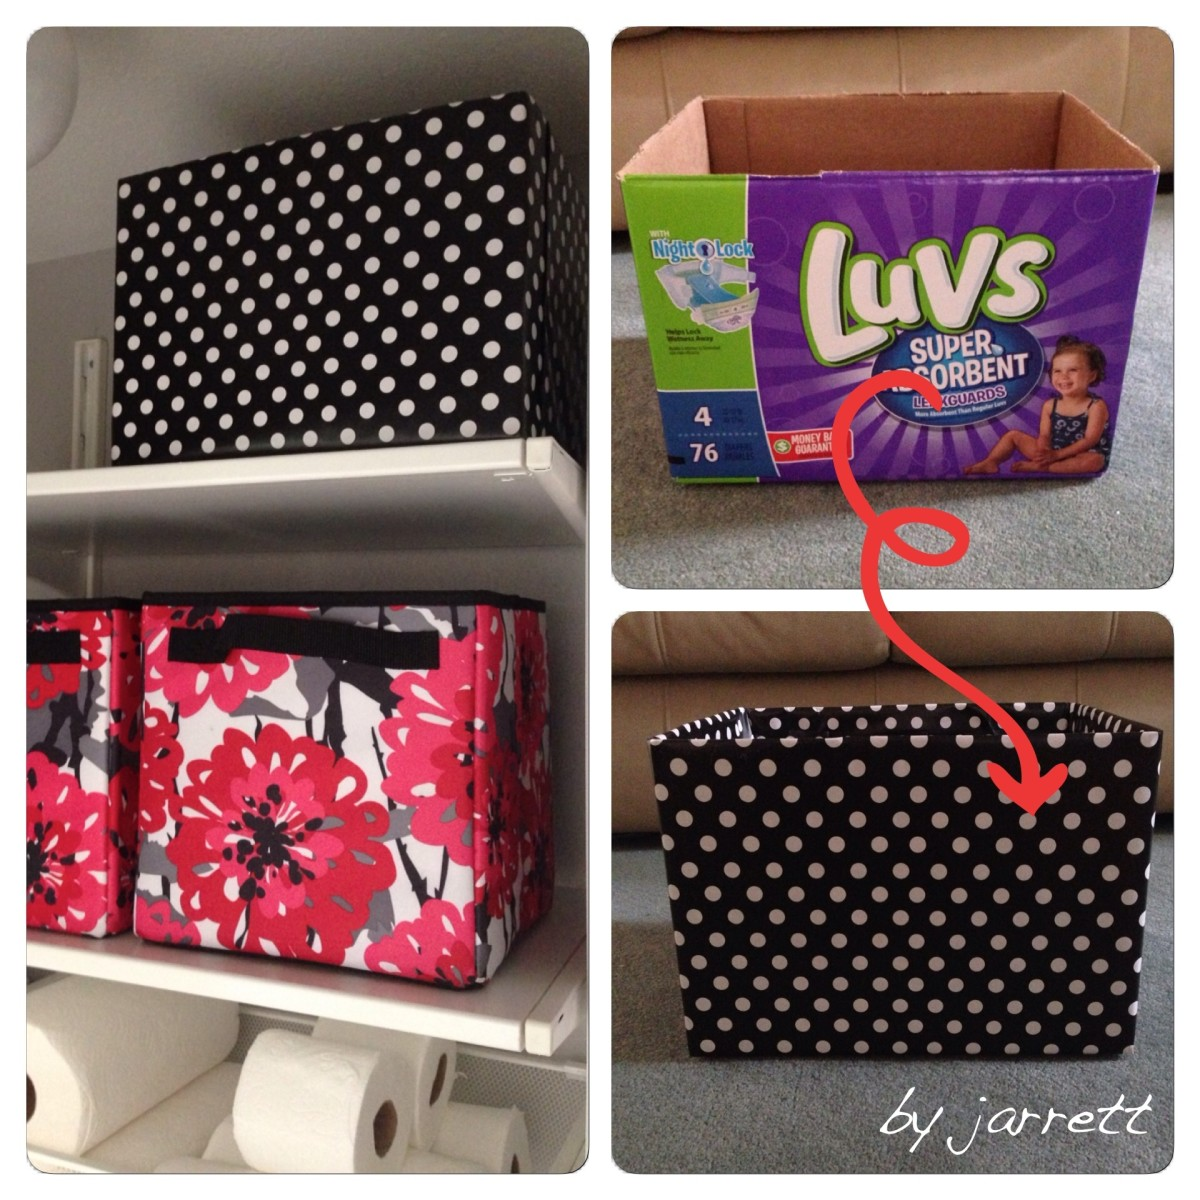 How to Repurpose Diaper Boxes for Home Storage